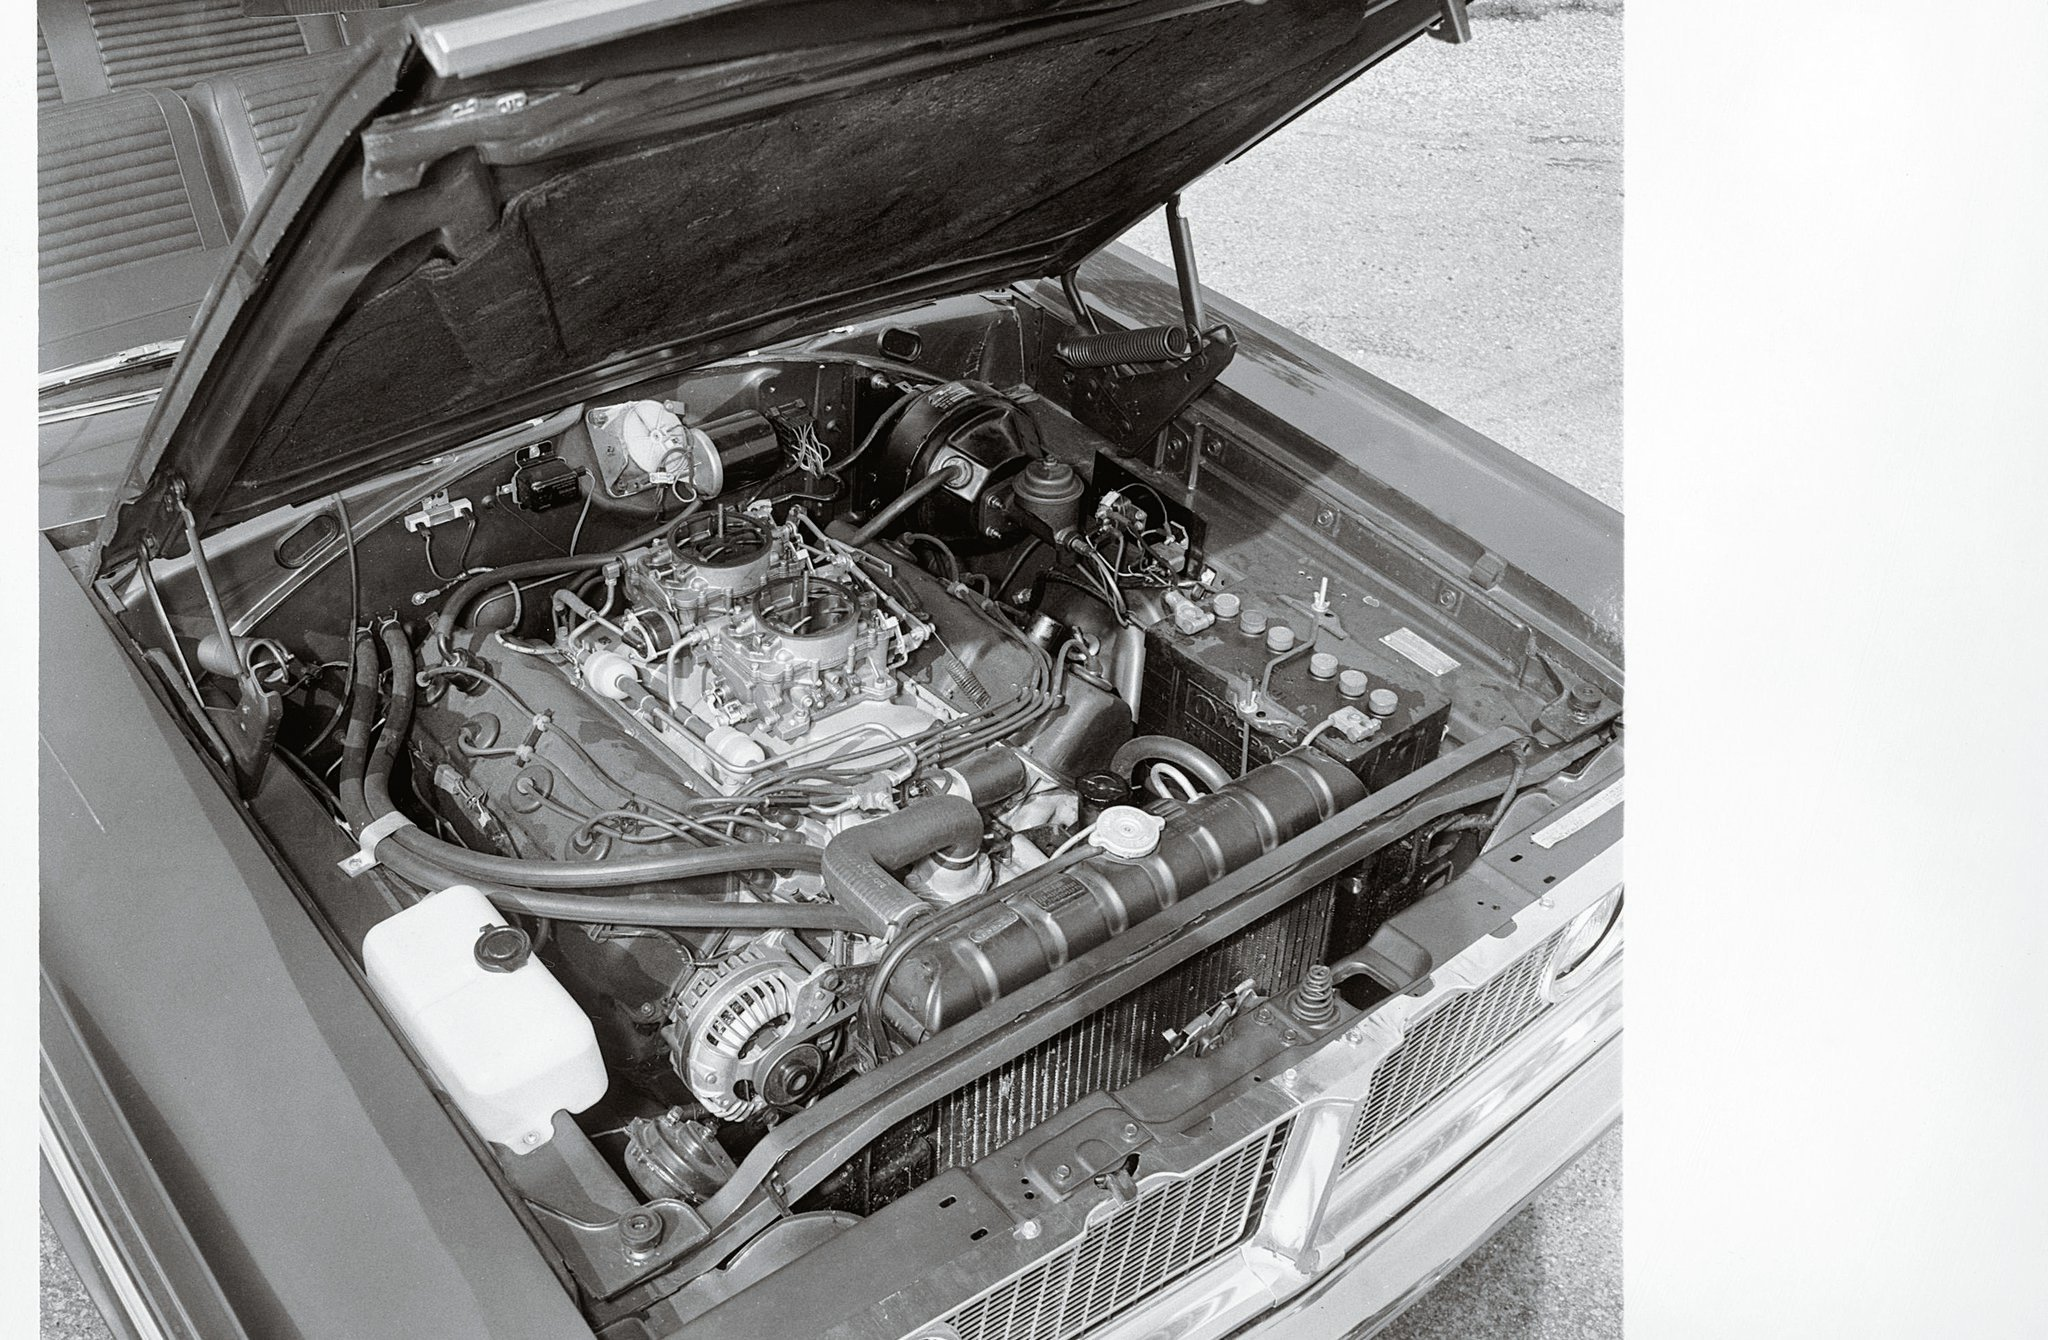 "The Street Hemi was a detuned version of the racing engine, with cast iron heads and intake manifold and a compression ratio that dropped from the race version's 12.5:1 to 10.25:1. ""Dual Carter AFBs operate progressively, rear opening first, then front,"" wrote Dahlquist about the induction system."